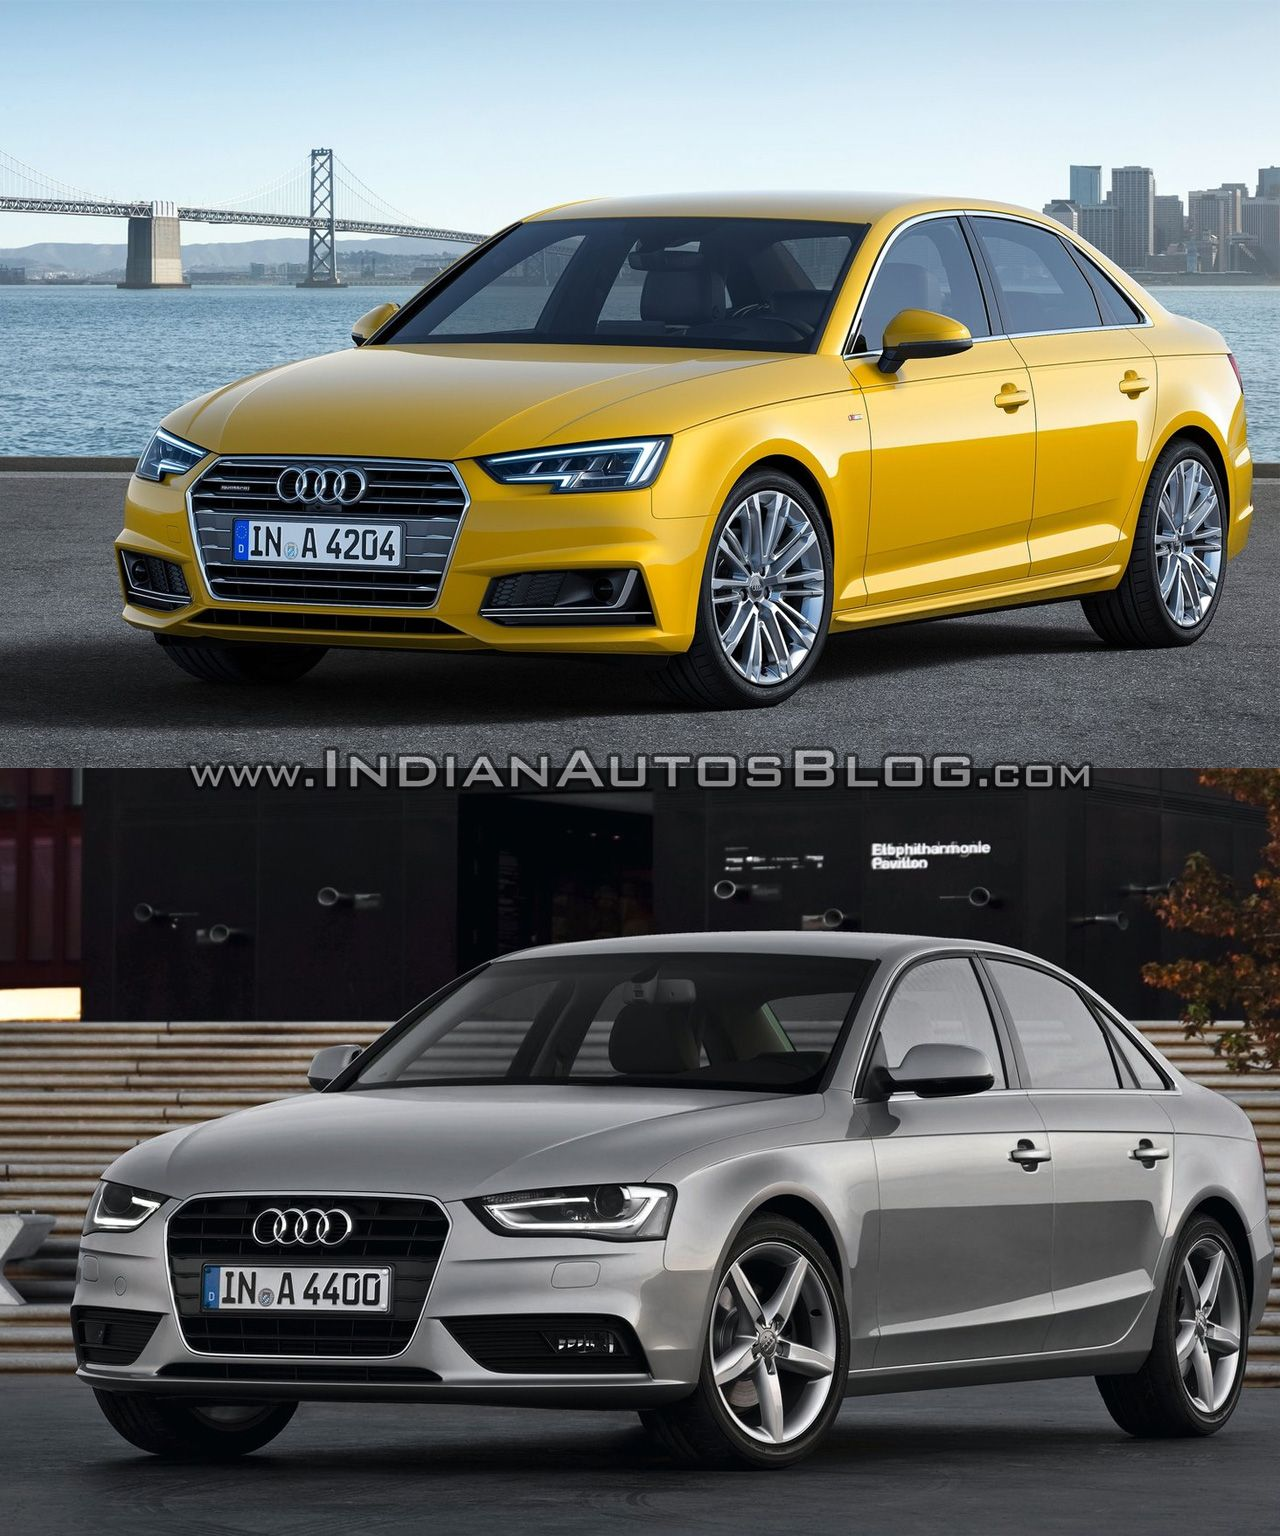 2016 audi a4 b9 vs 2013 audi a4 b8 old vs new cars. Black Bedroom Furniture Sets. Home Design Ideas